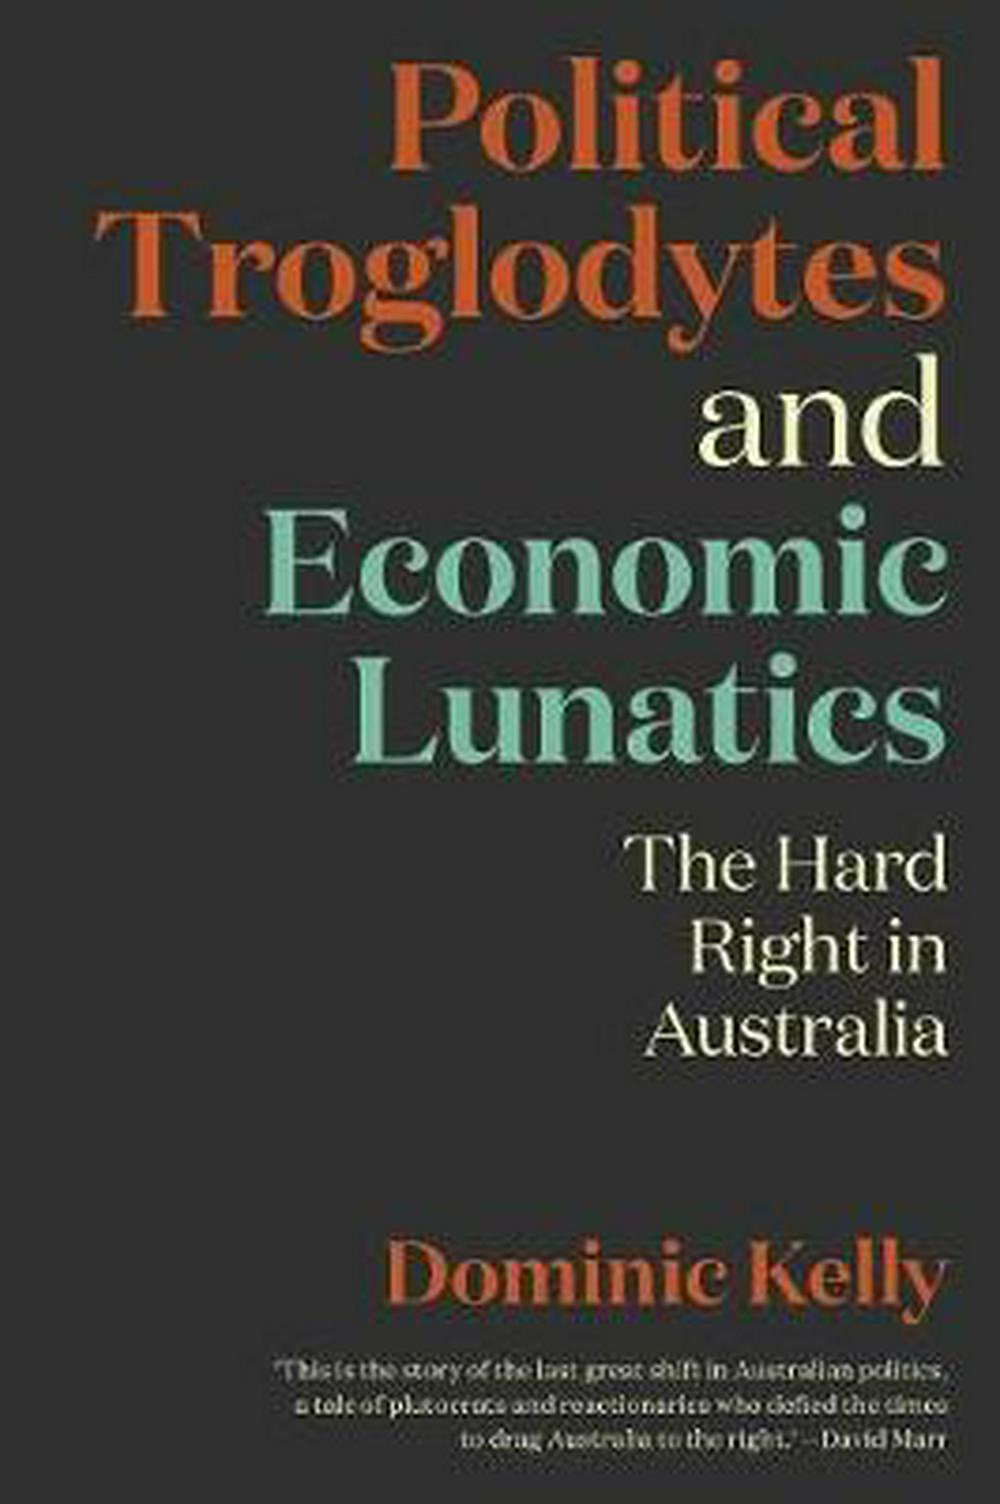 Political Troglodytes and Economic LunaticsThe Hard Right in Australia